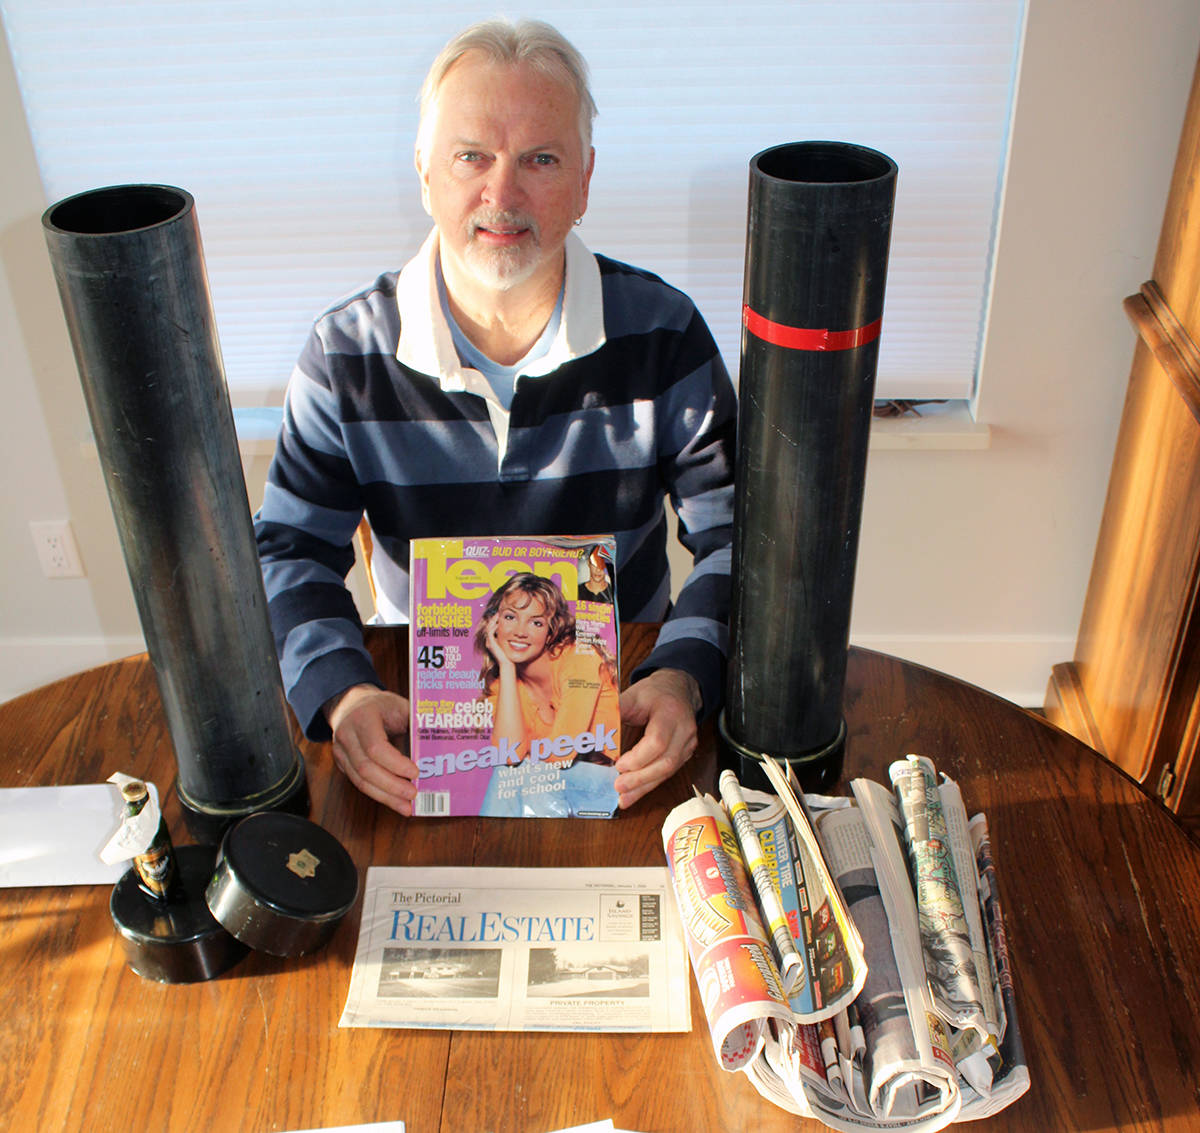 Dan Robin with a magazine cover featuring a very young Britney Spears, the cover of the Pictorial real estate section and other newspapers from the end of the 1990s. (Photo by Don Bodger)